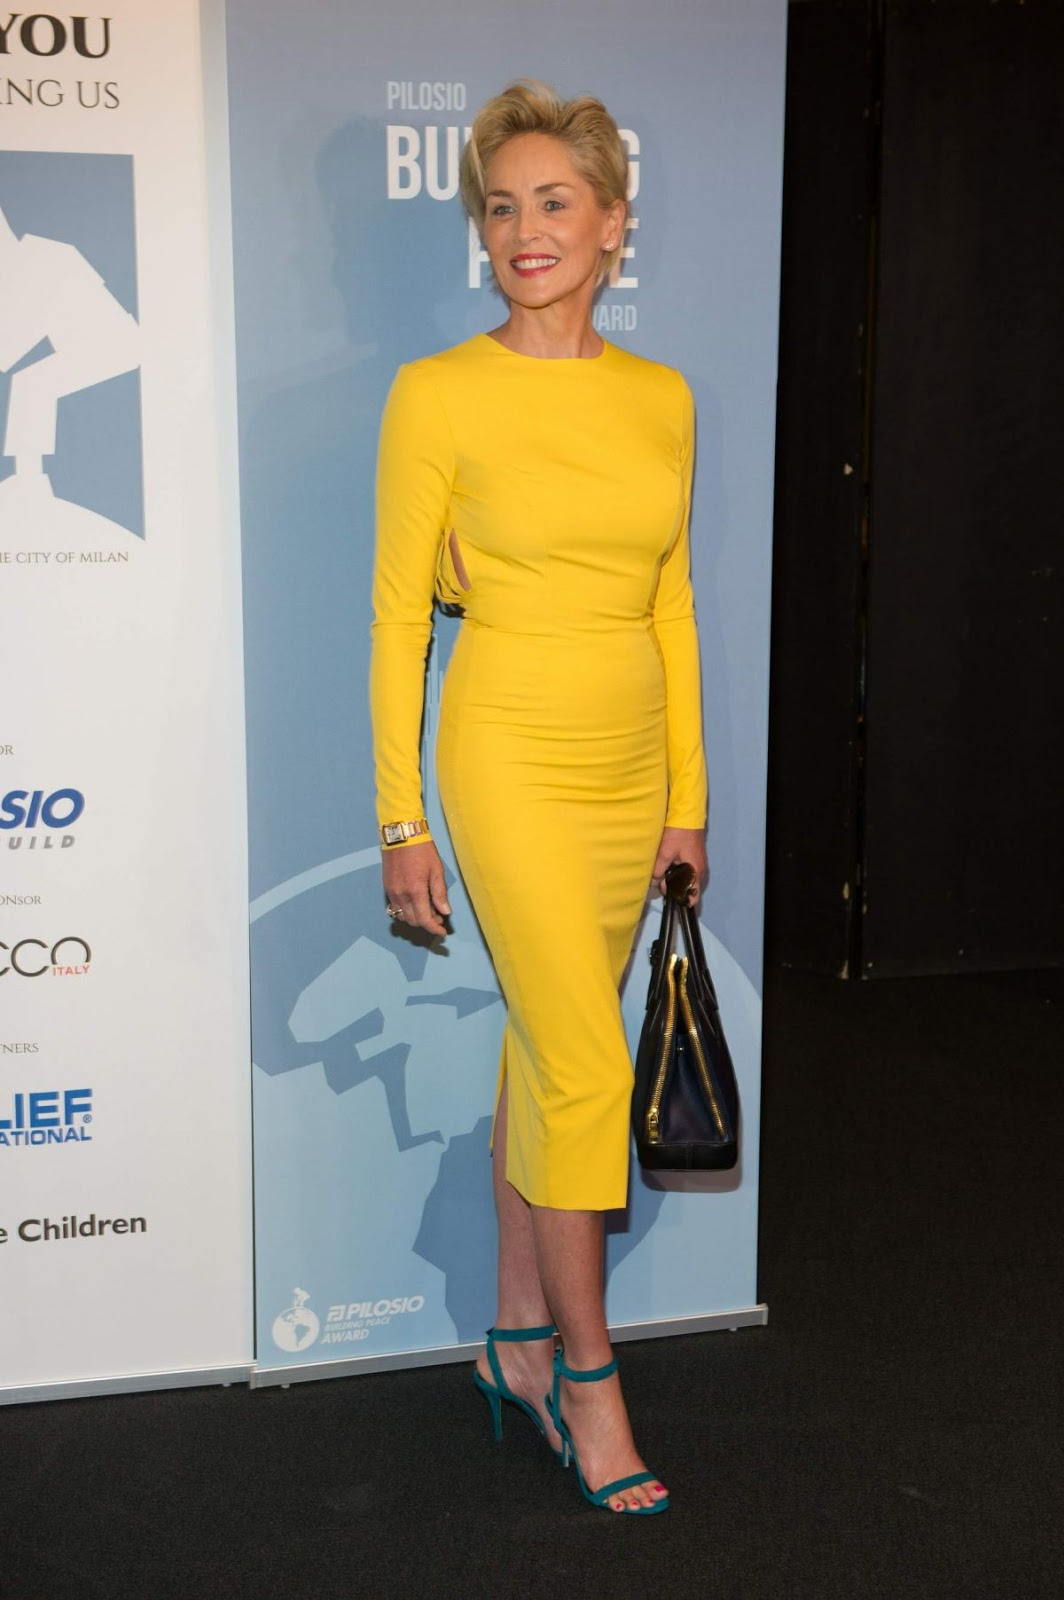 HQ Photos of Sharon Stone in Yellow dress At Pilosio Building Peace Award 2015 In Milan